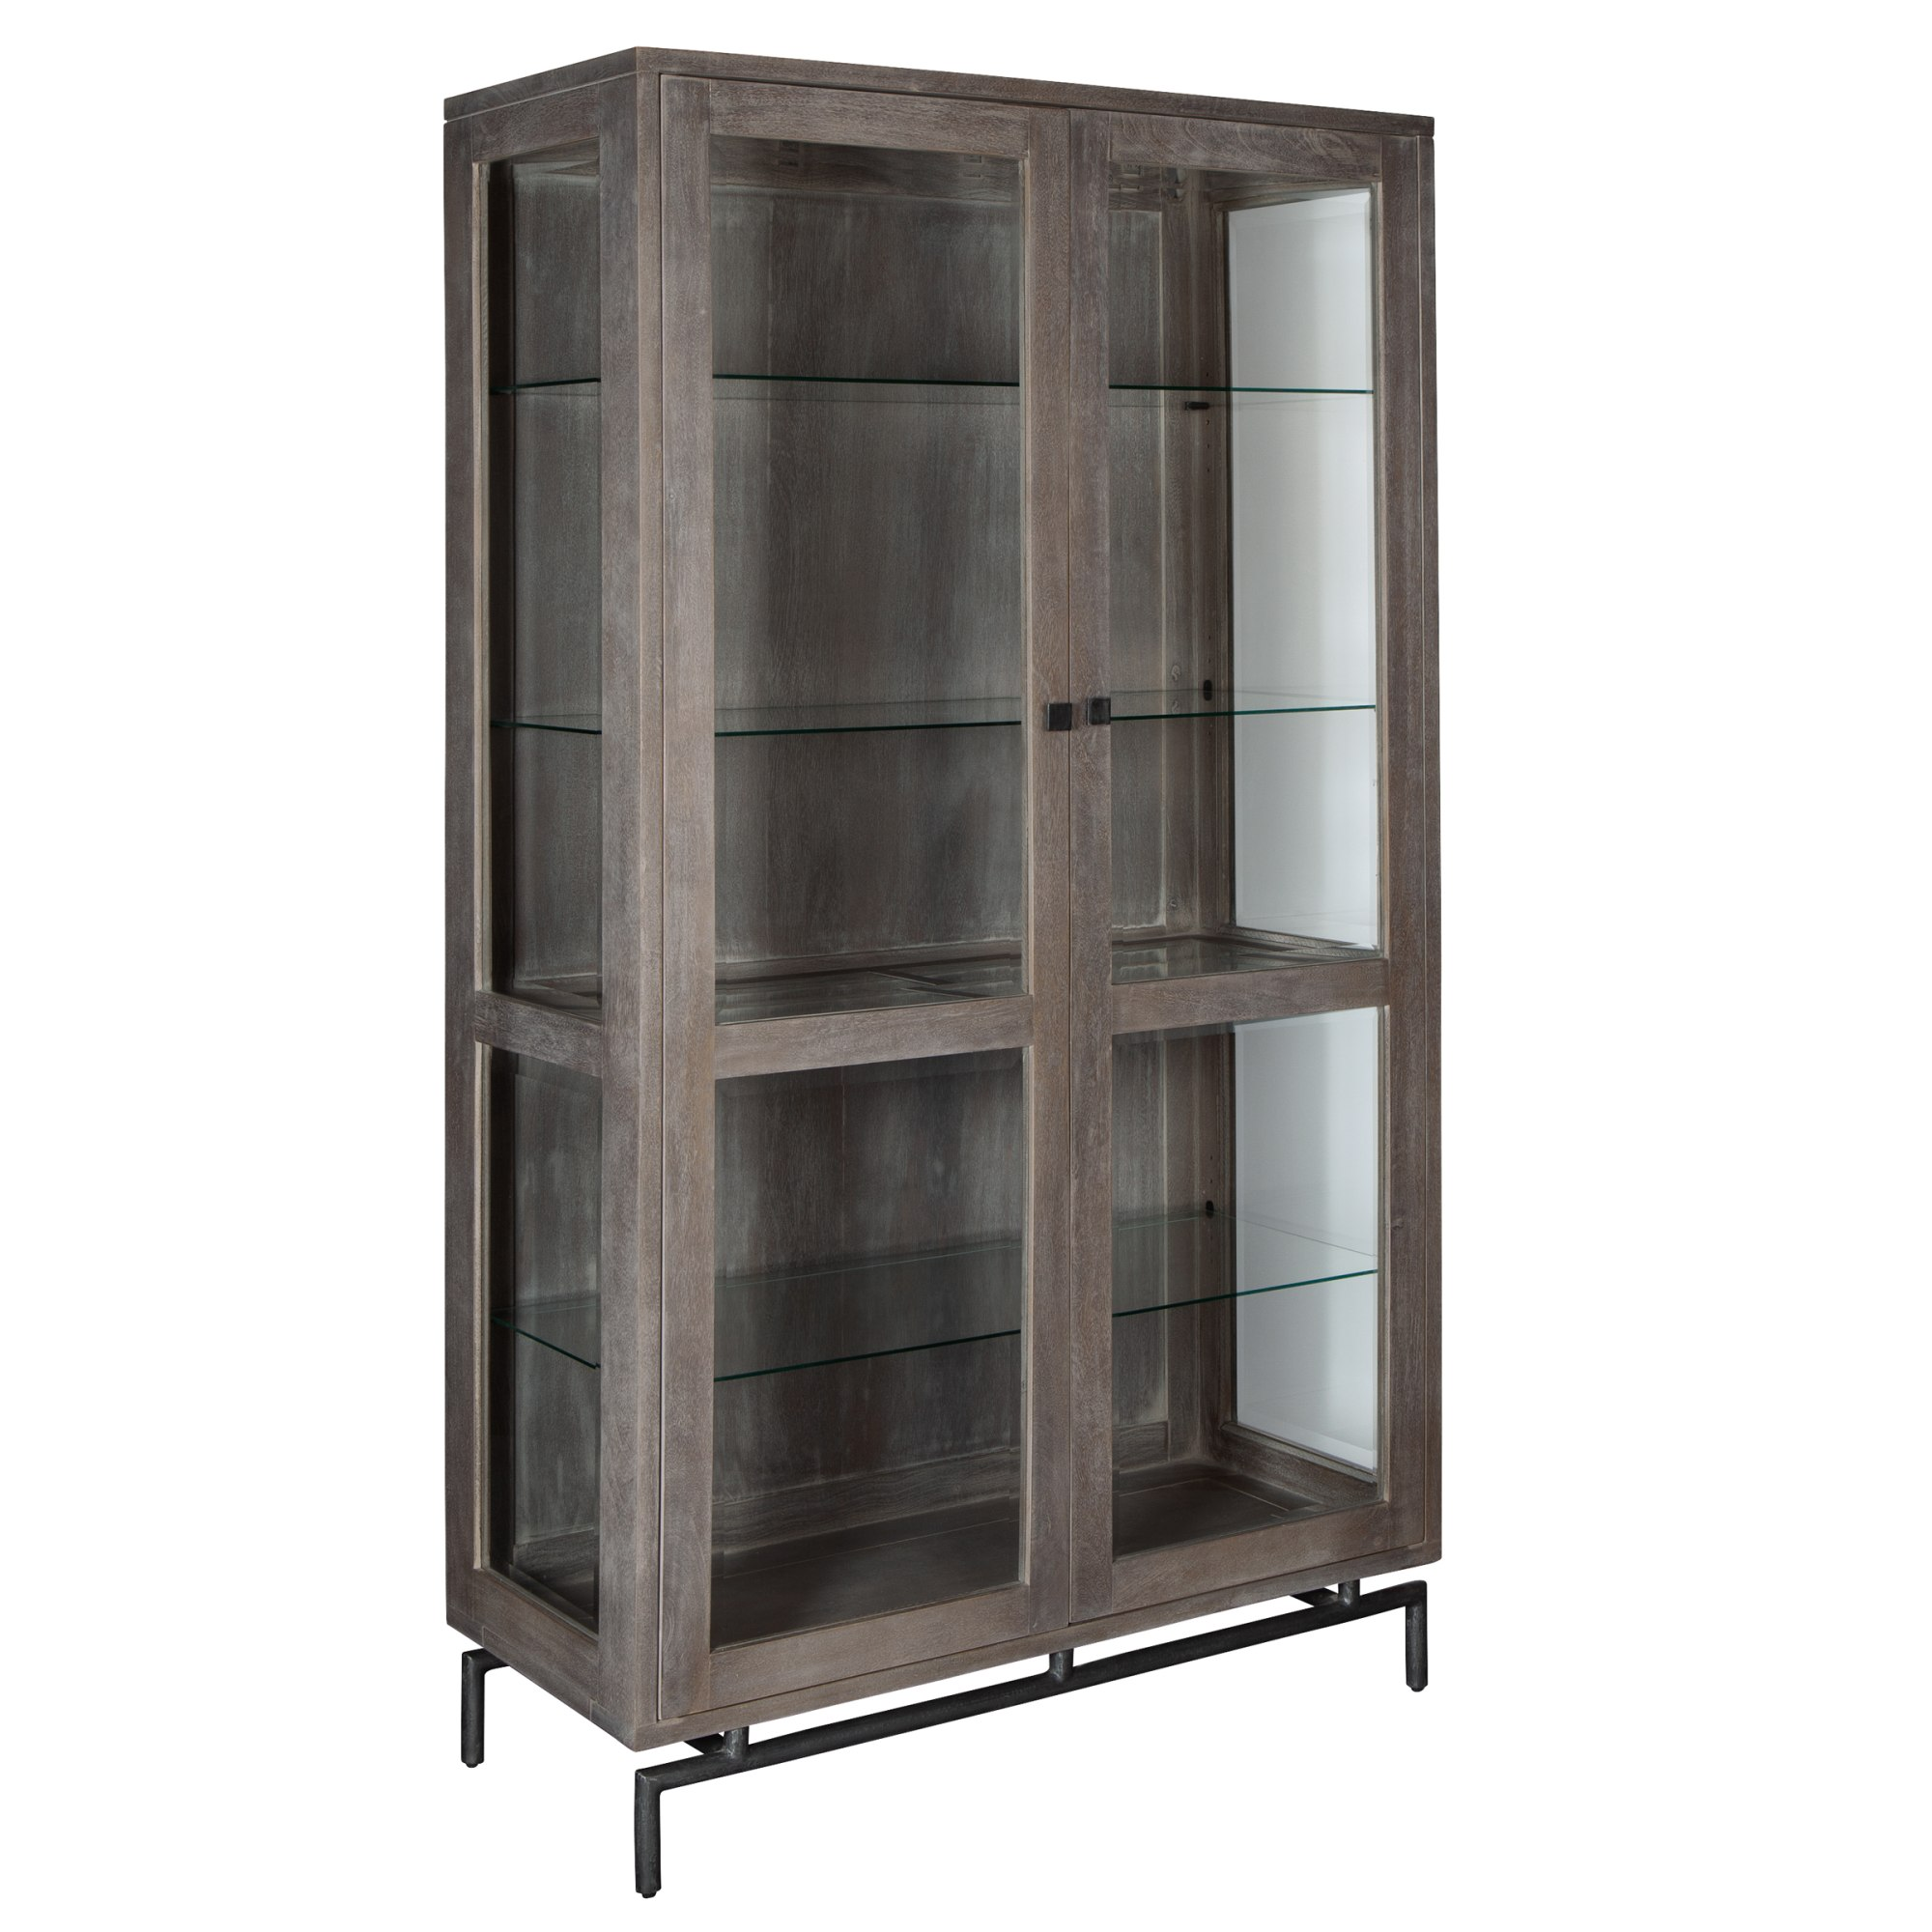 Image for 2-4527 Sedona Display Cabinet from Hekman Official Website